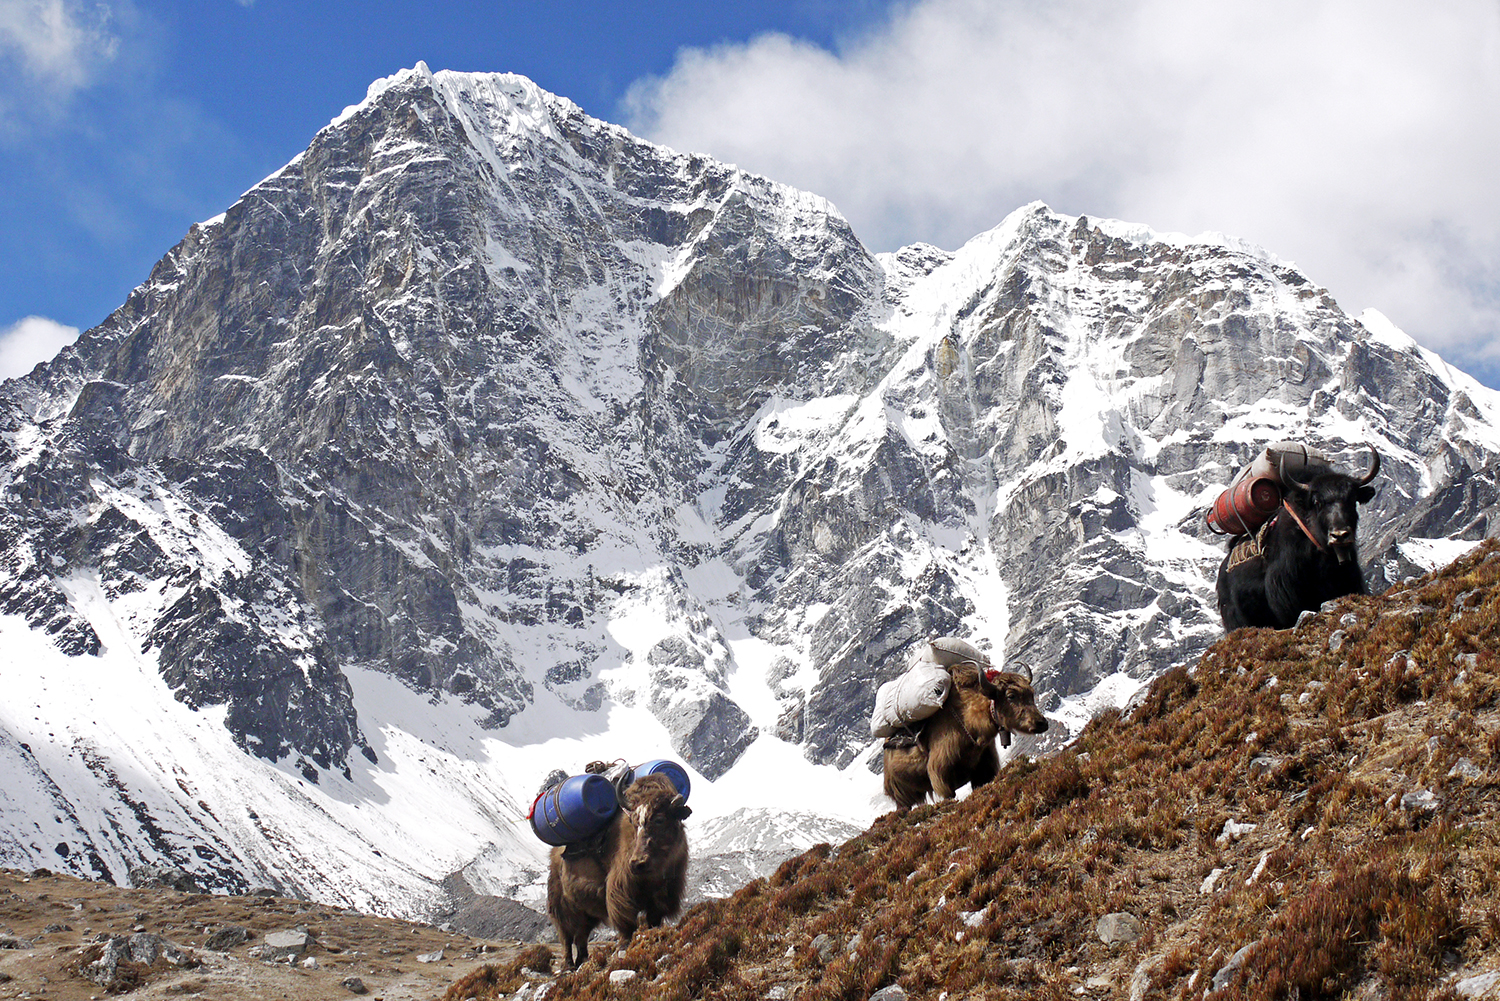 Three yaks stop for a rest en route to Everest Base Camp